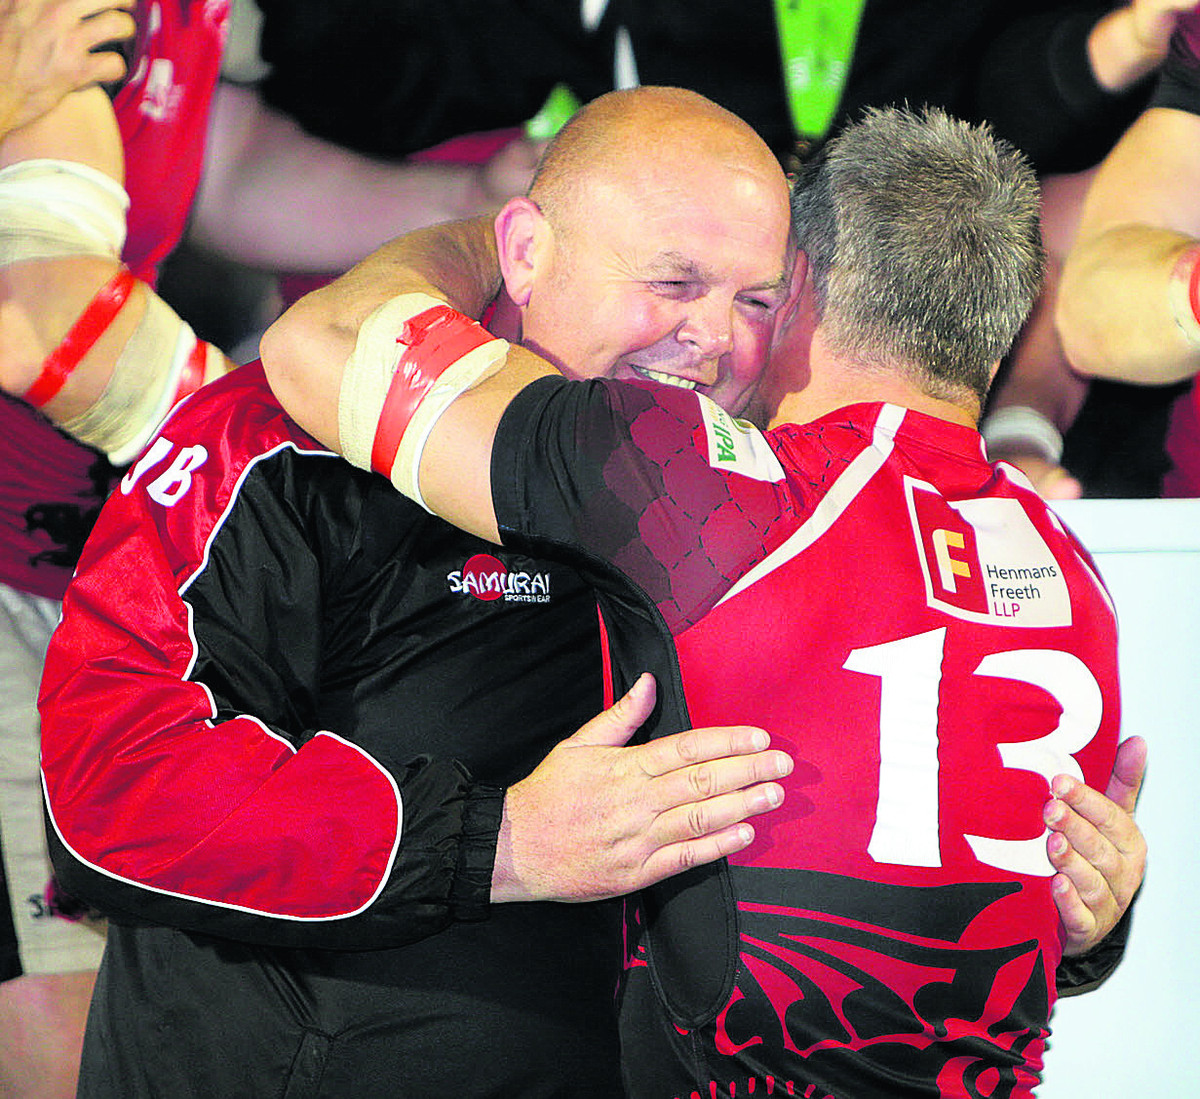 London Welsh skipper Tom May hugs head coach Justin Burnell after their success at Bristol on Wednesday night which secured promotion back into the Aviva Premiership